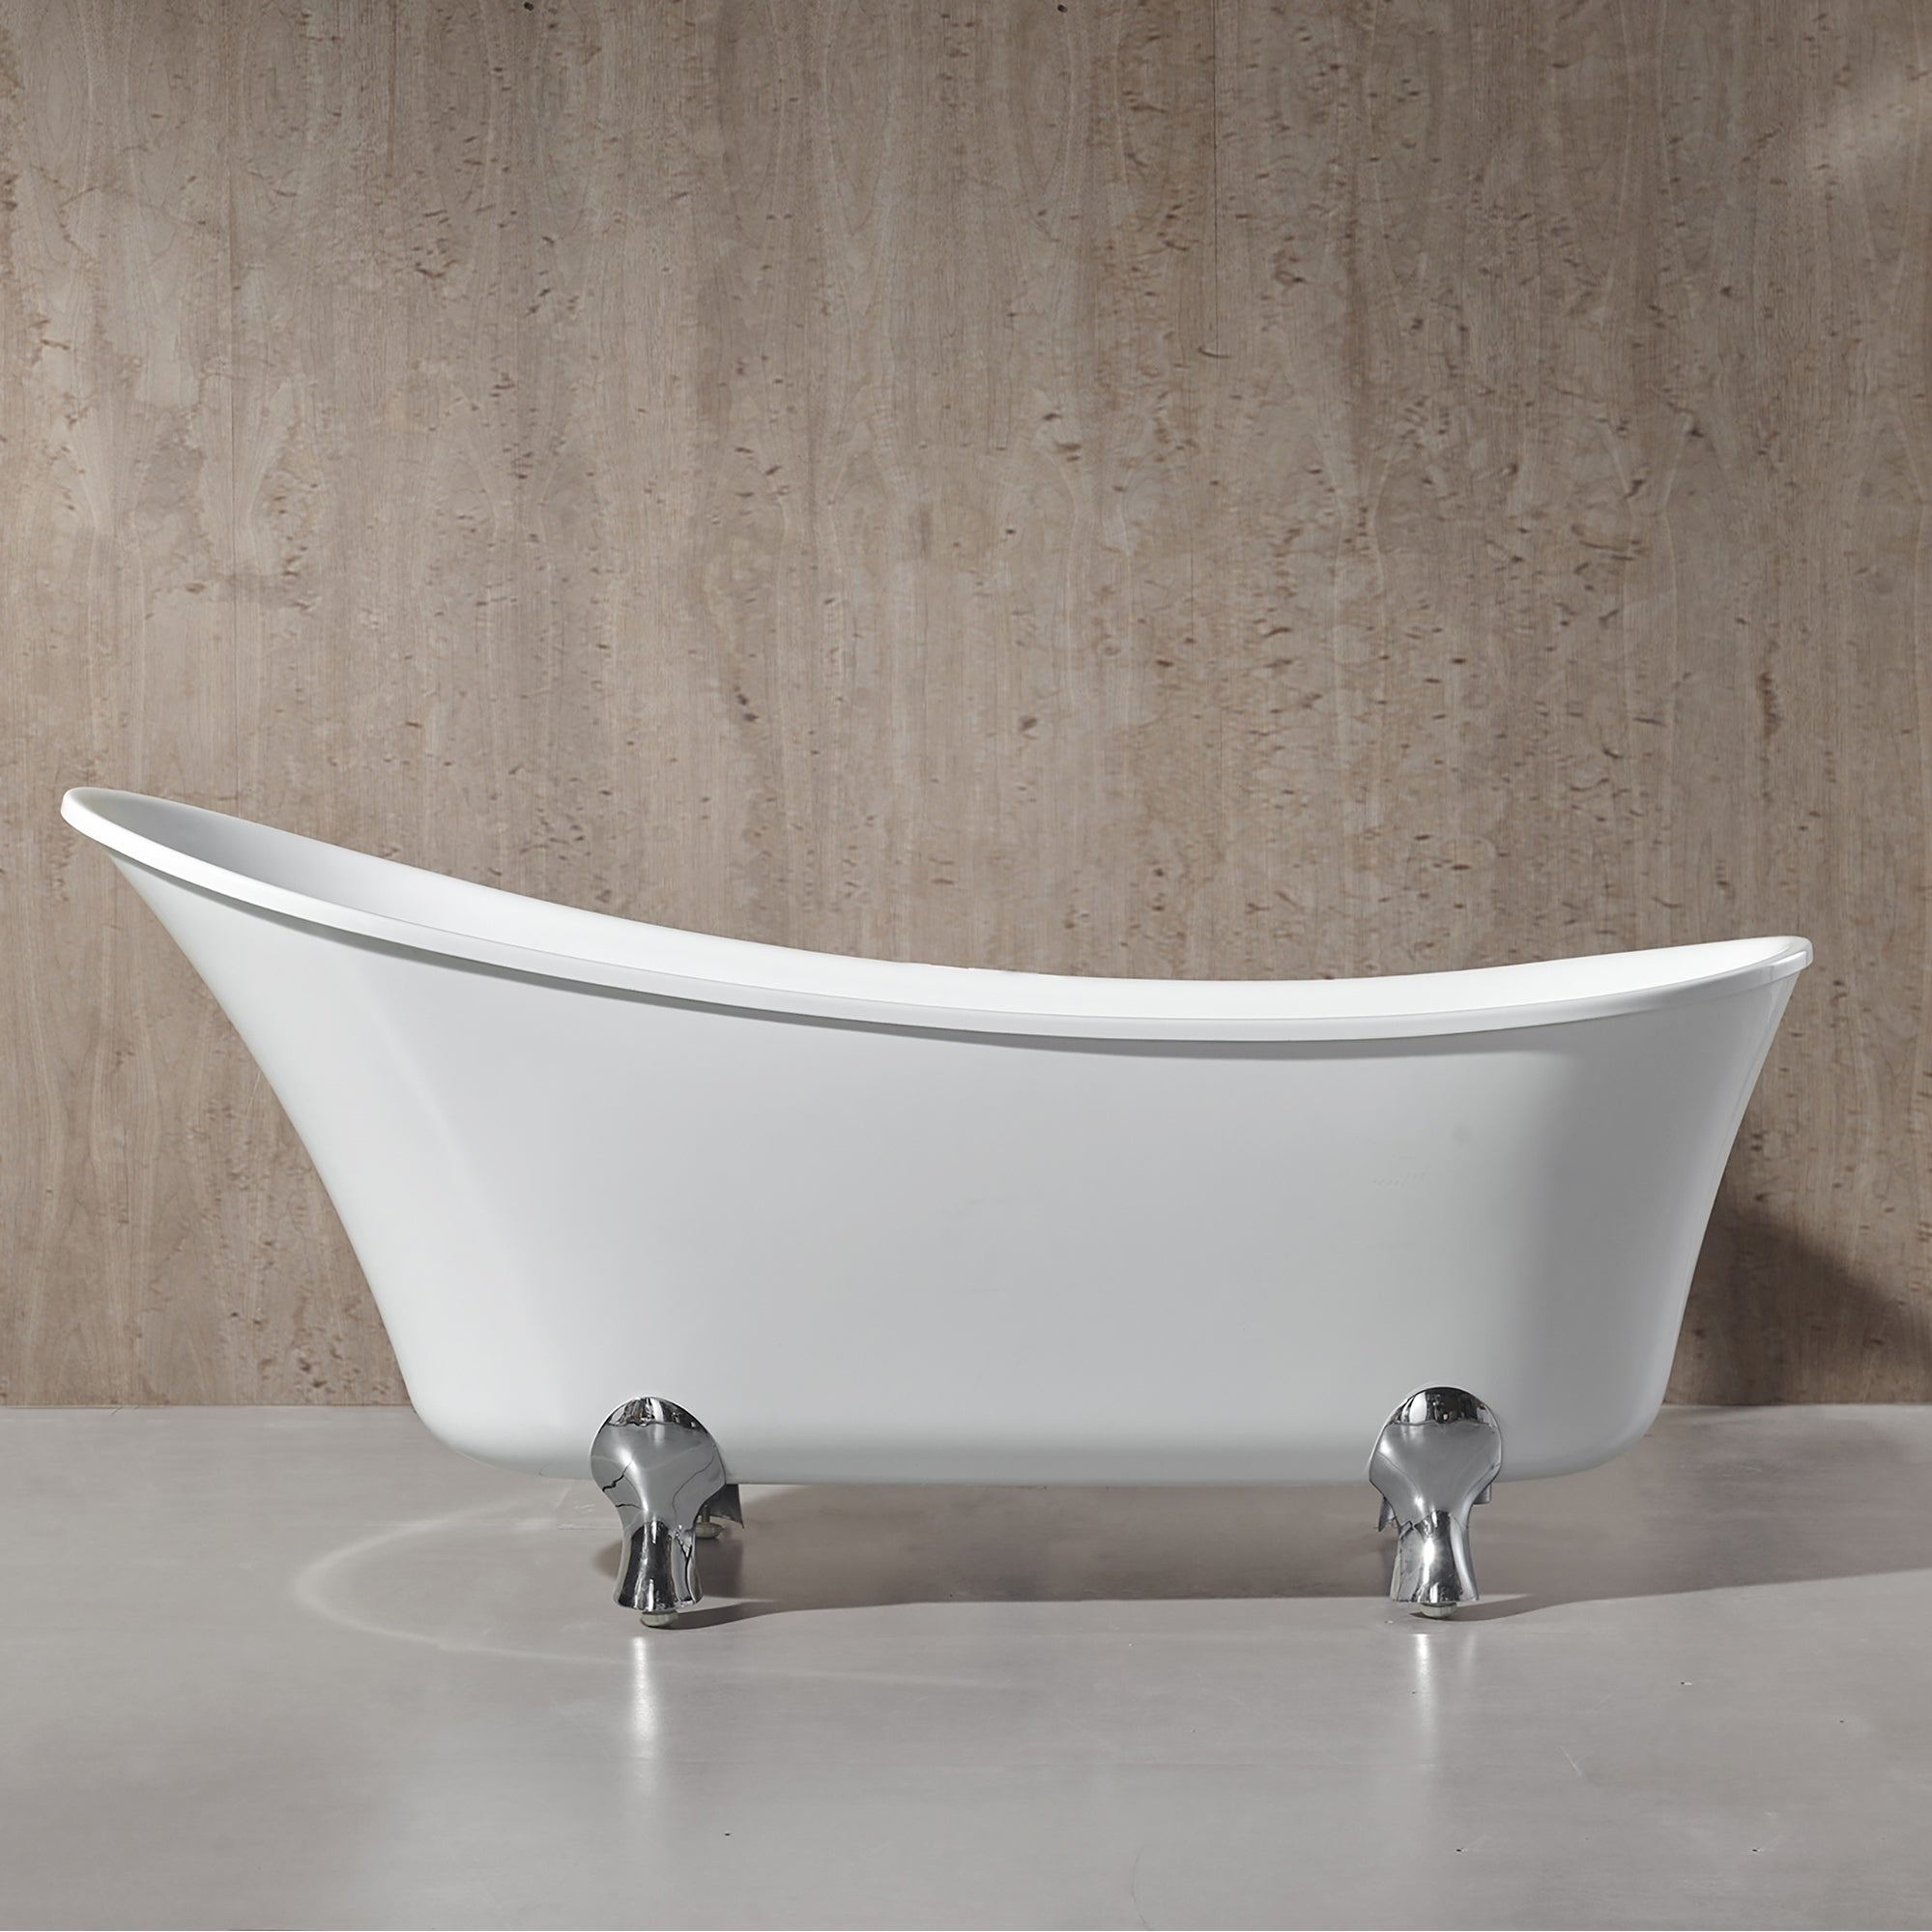 Shop Pearl 69 in. Freestanding Acrylic Tub in Glossy White - Free ...